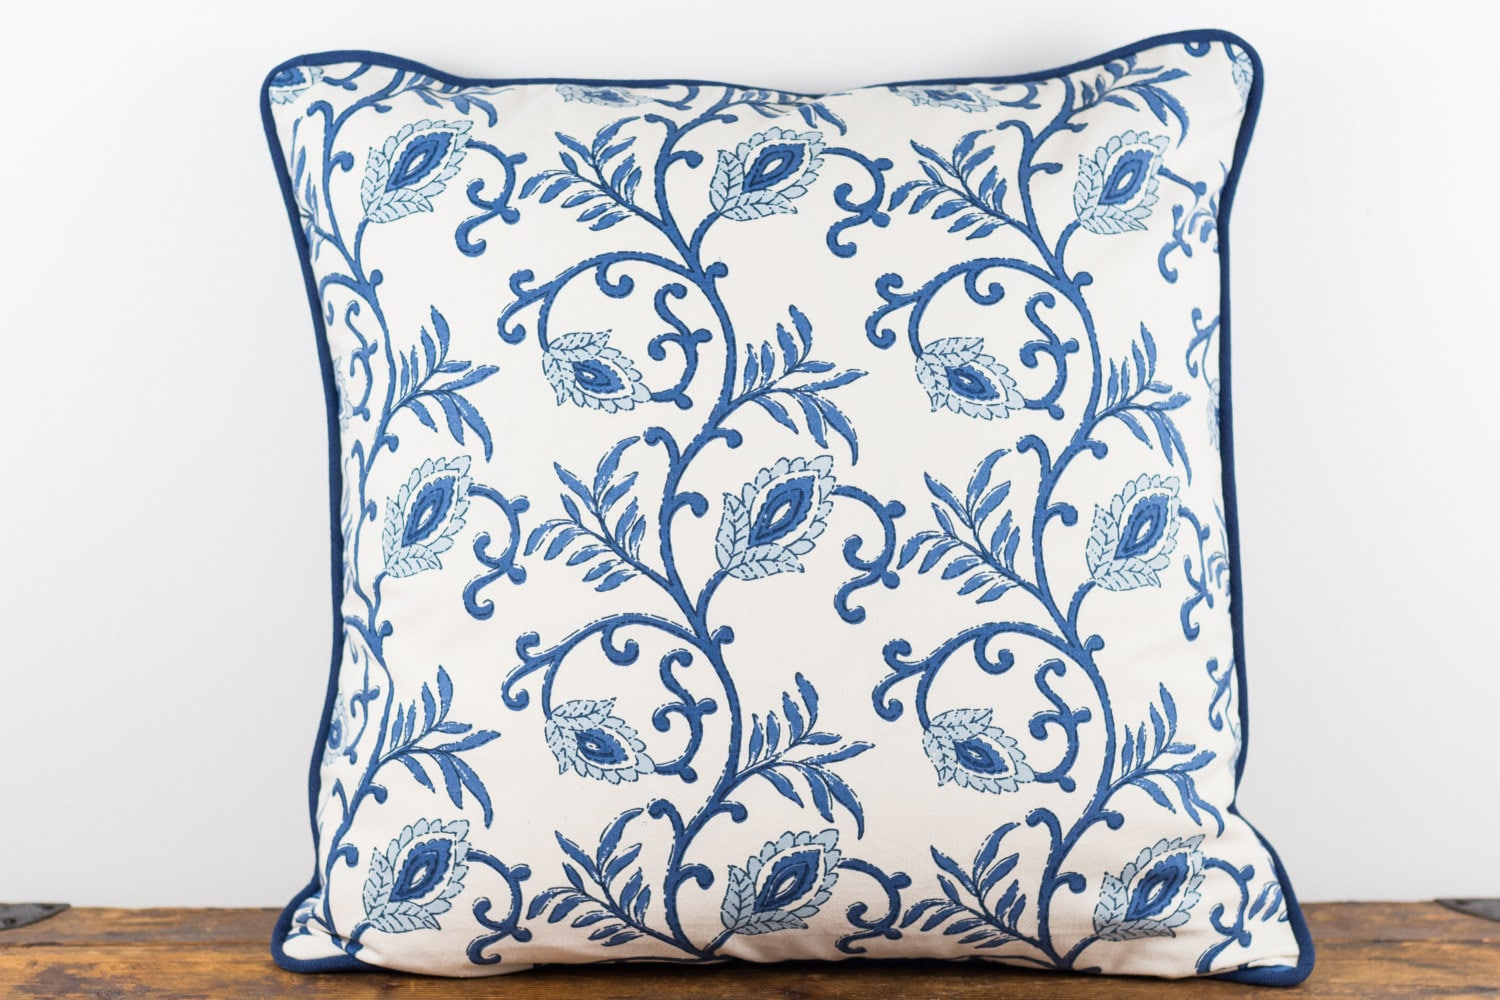 Blue and natural block print pillow cover